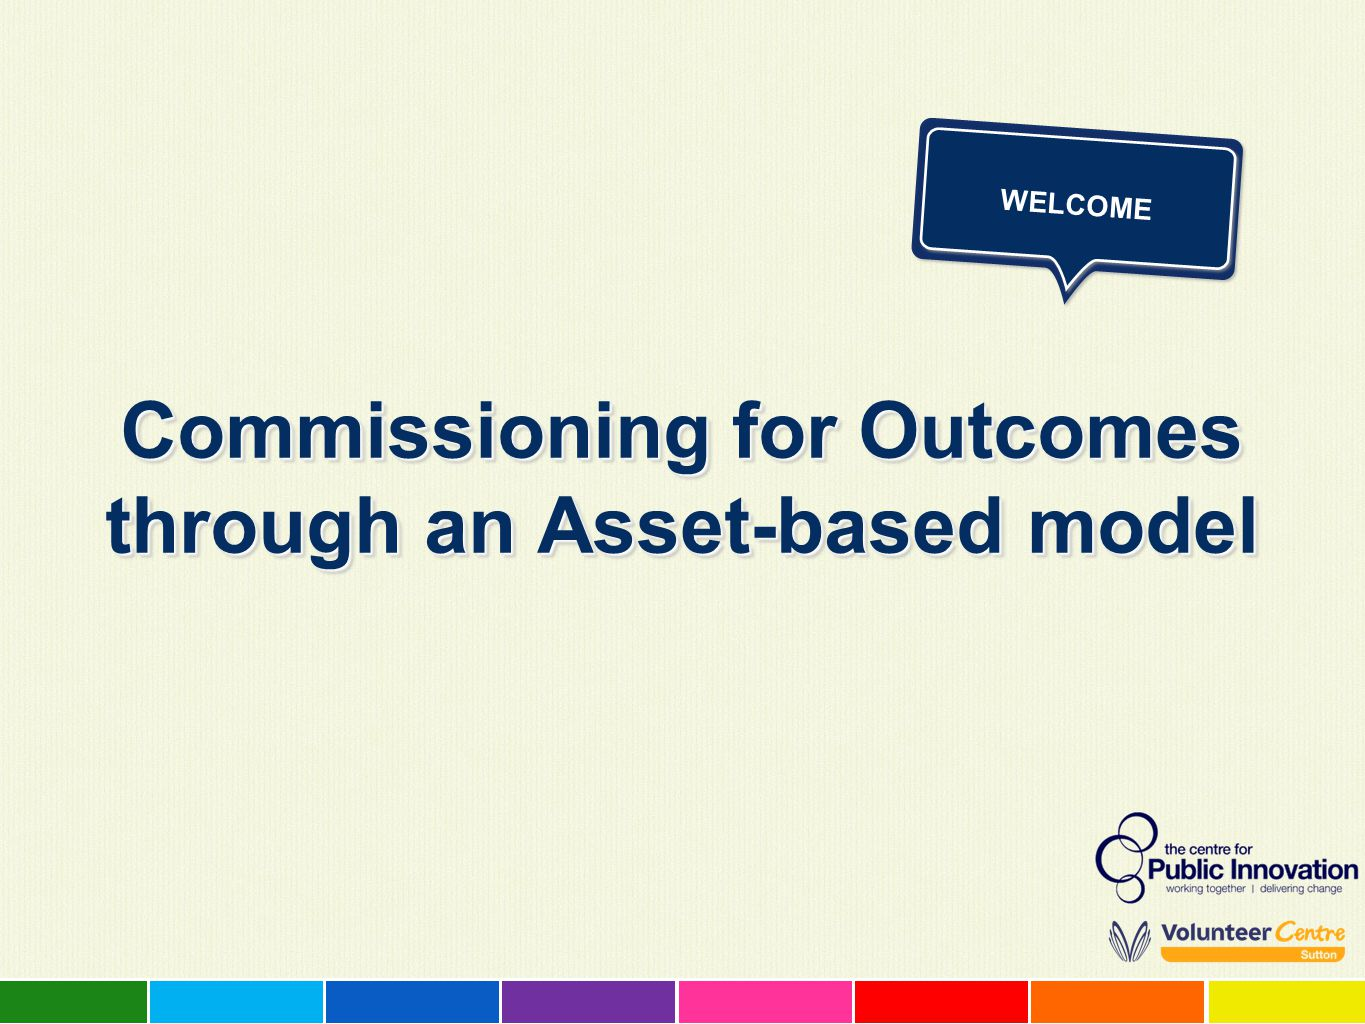 Commissioning for Outcomes through an Asset-based model